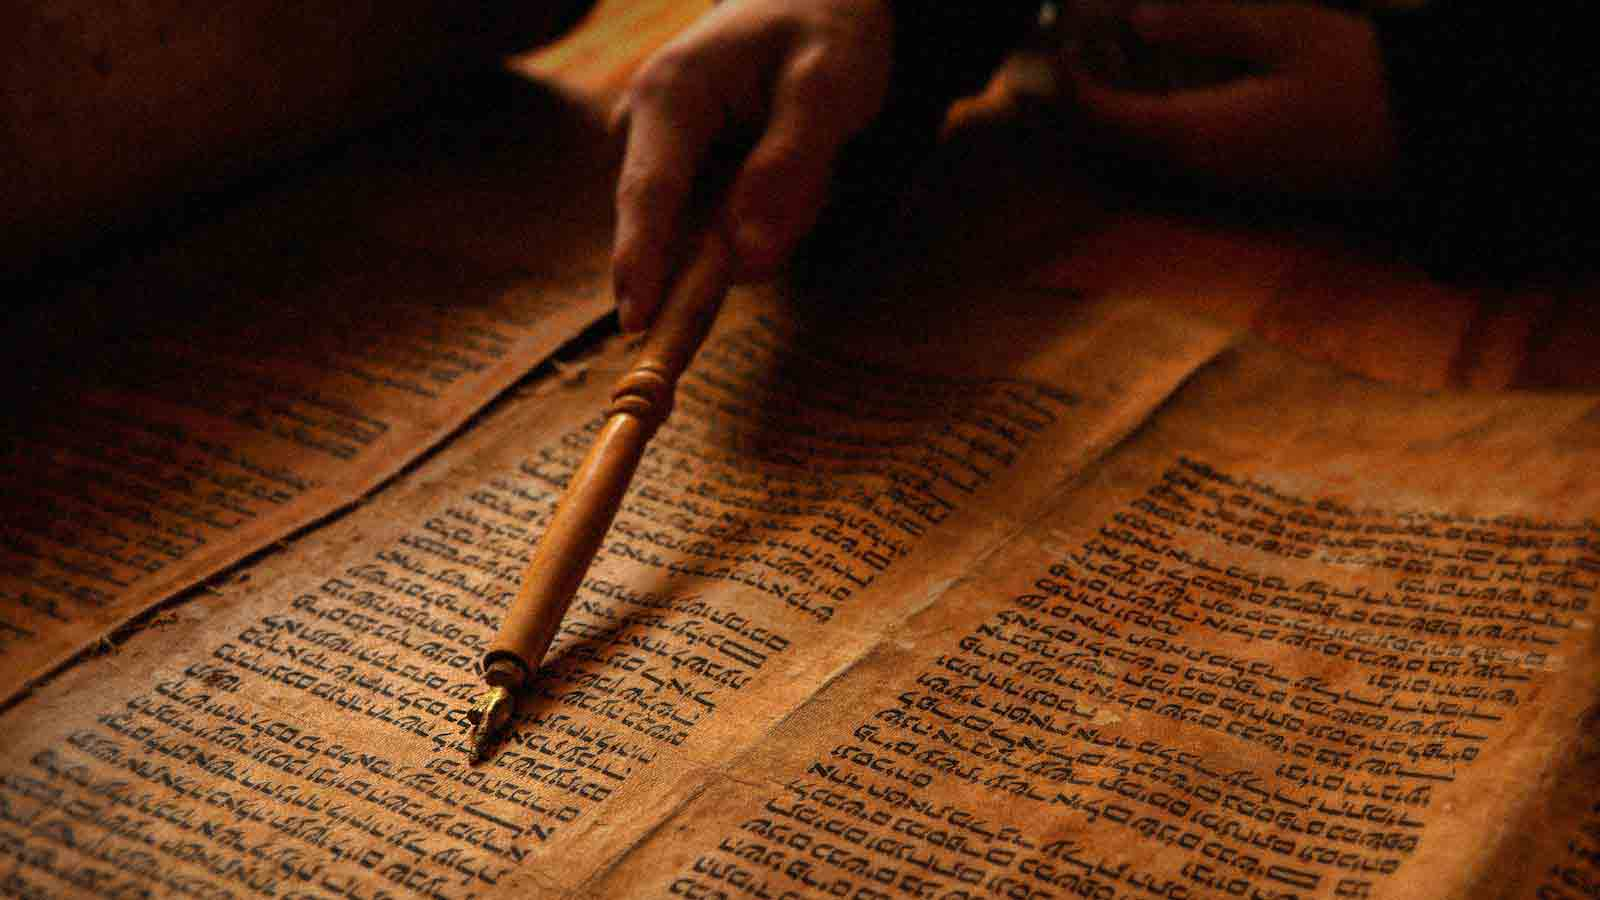 EXPLORE THE BIBLE FROM A JEWISH PERSPECTIVE